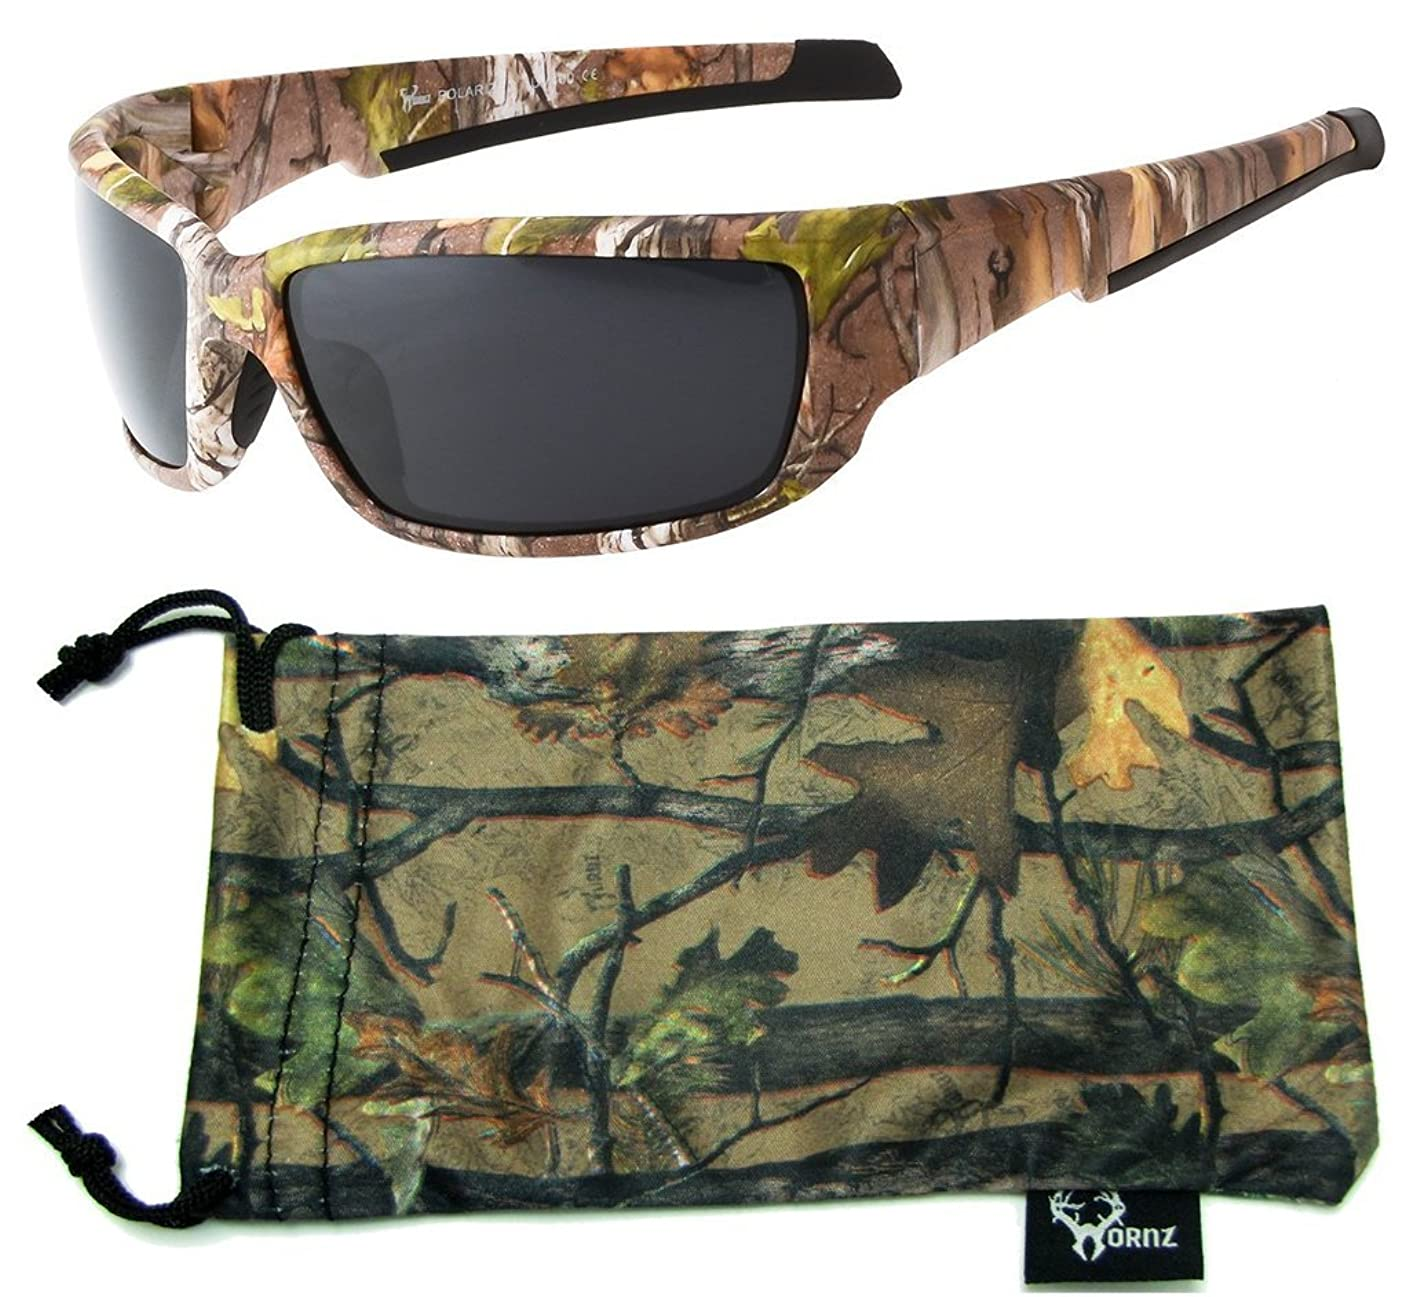 Hornz Brown Forest Camouflage Polarized Sunglasses for Men Full Frame Strong Arms & Free Matching Microfiber Pouch ggpkfqx73